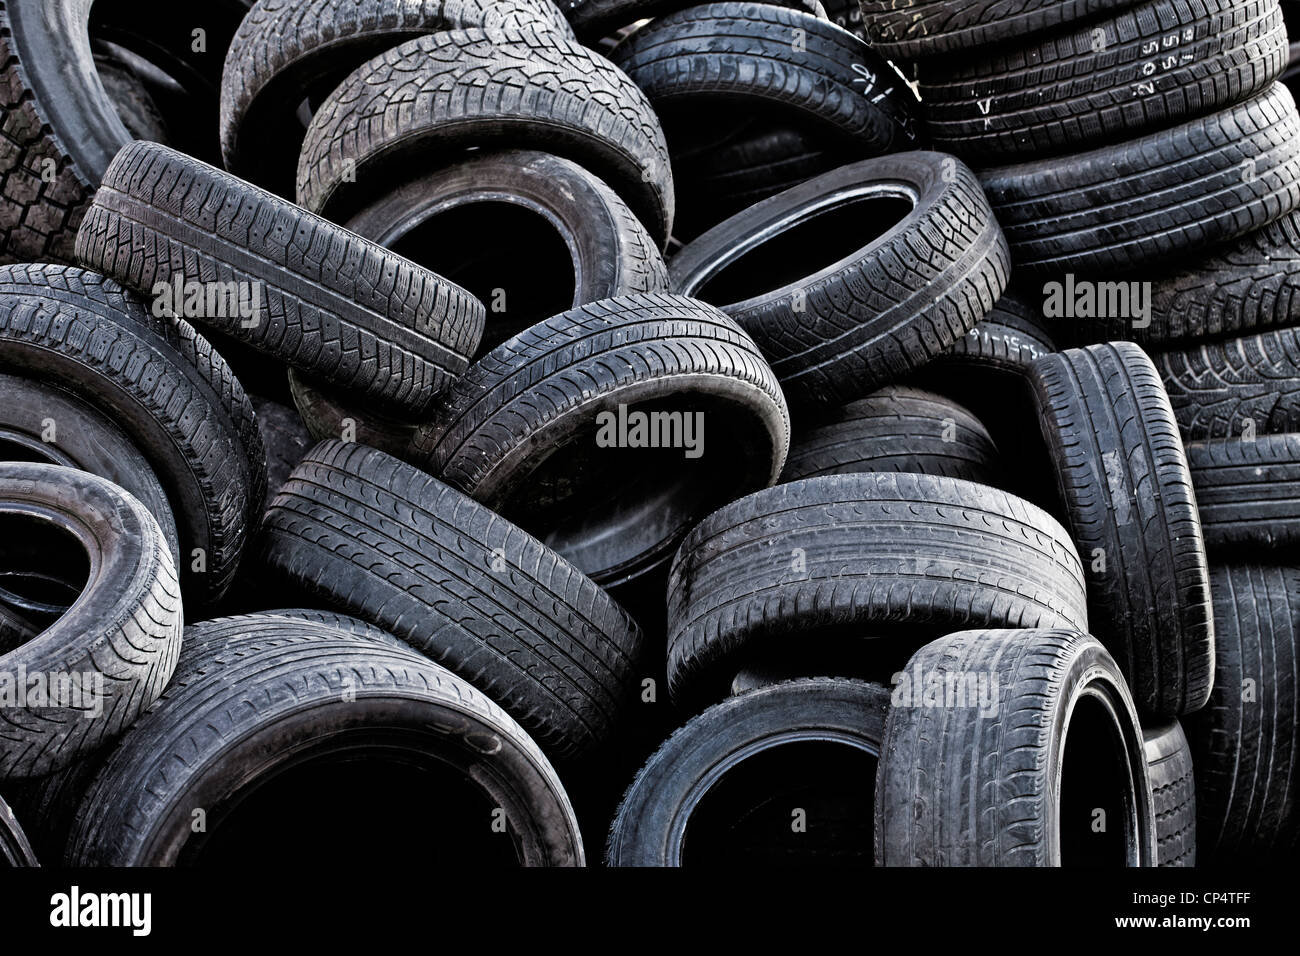 Pile of old used car tires. - Stock Image